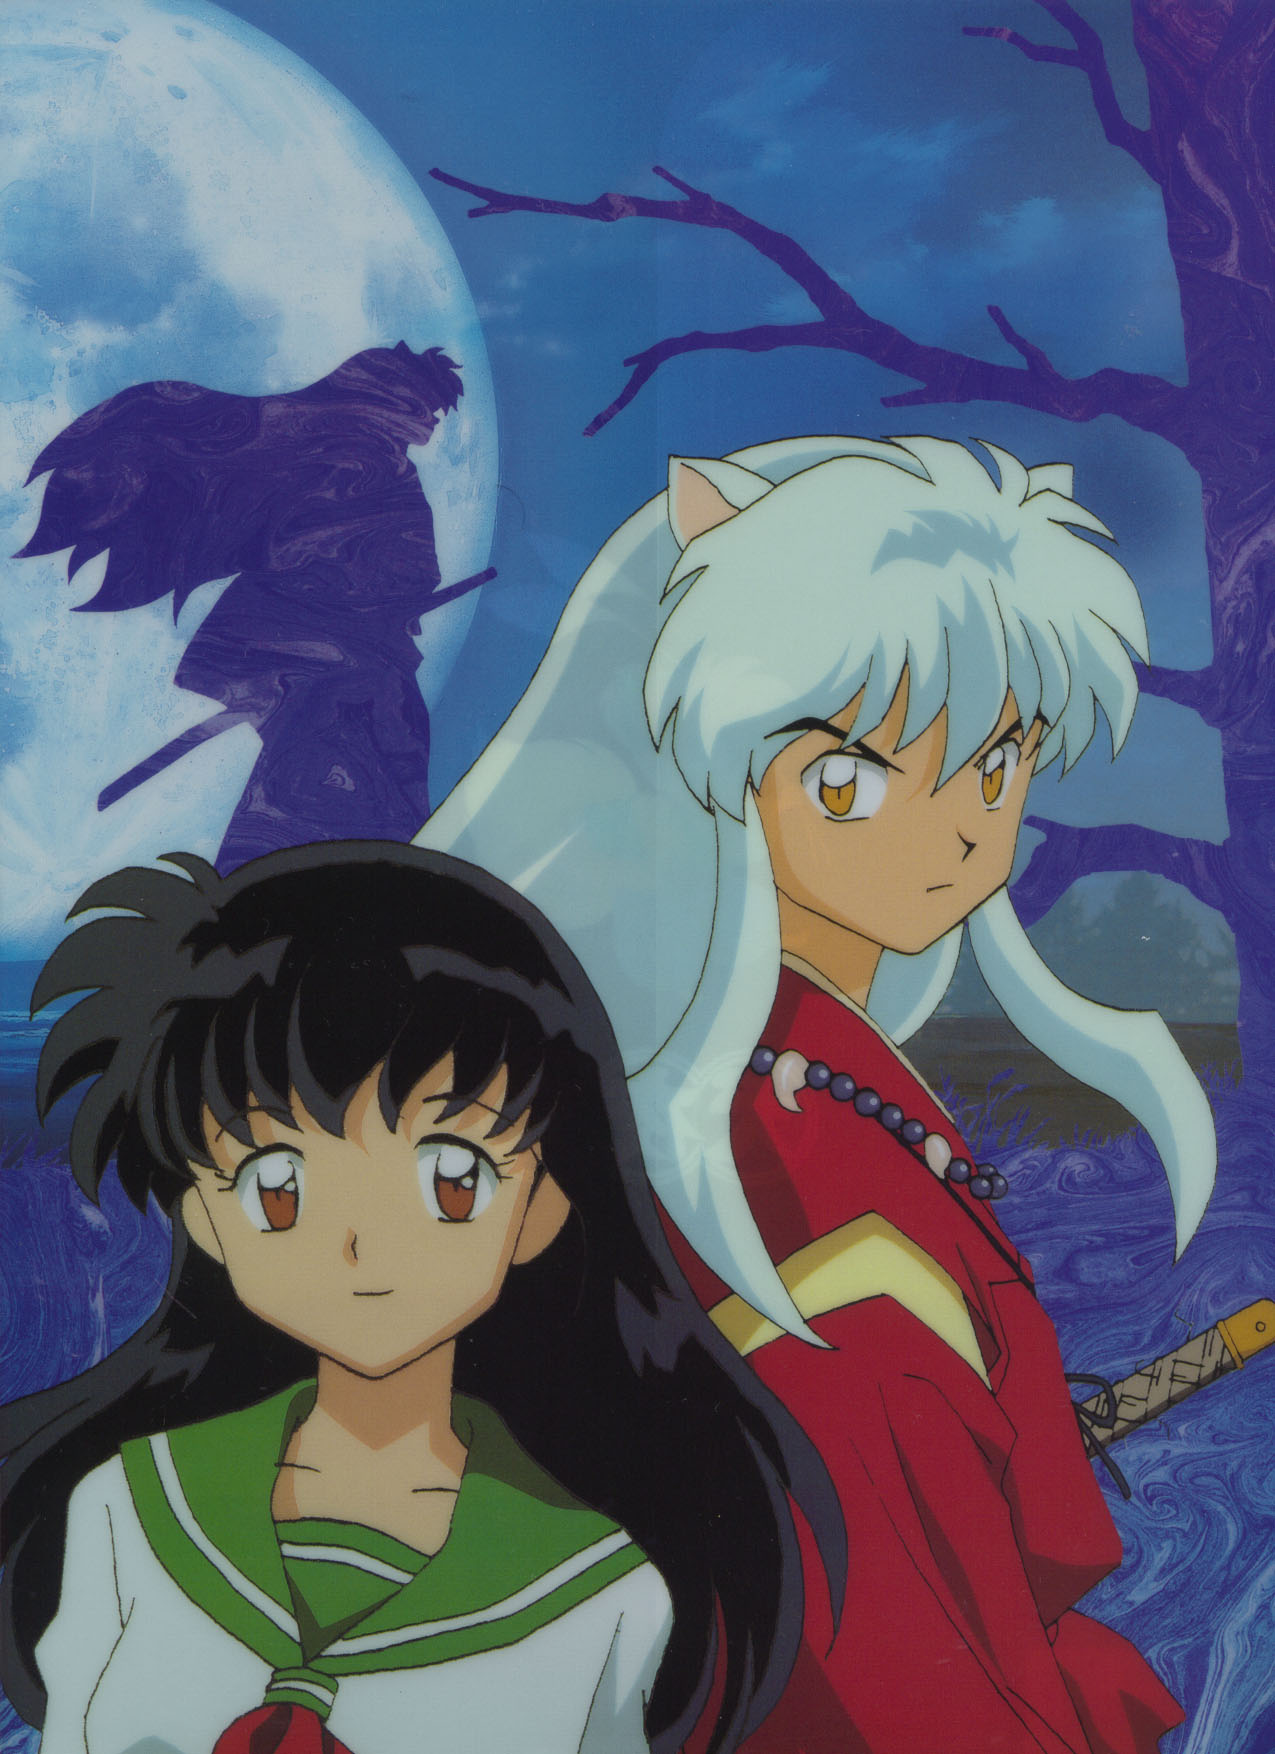 inuyasha dating This application helps users to draw different kinds of anime characters the program shows step by step drawing for each image you don't need any special skills it's self-teachingincluding: 1- detective conan2- gintama3- one piece4- pokemon5- ranma6- inuyasha7- chobits8- fushigi yugi9- jojo's bizarre adventure part#110- jojo's.